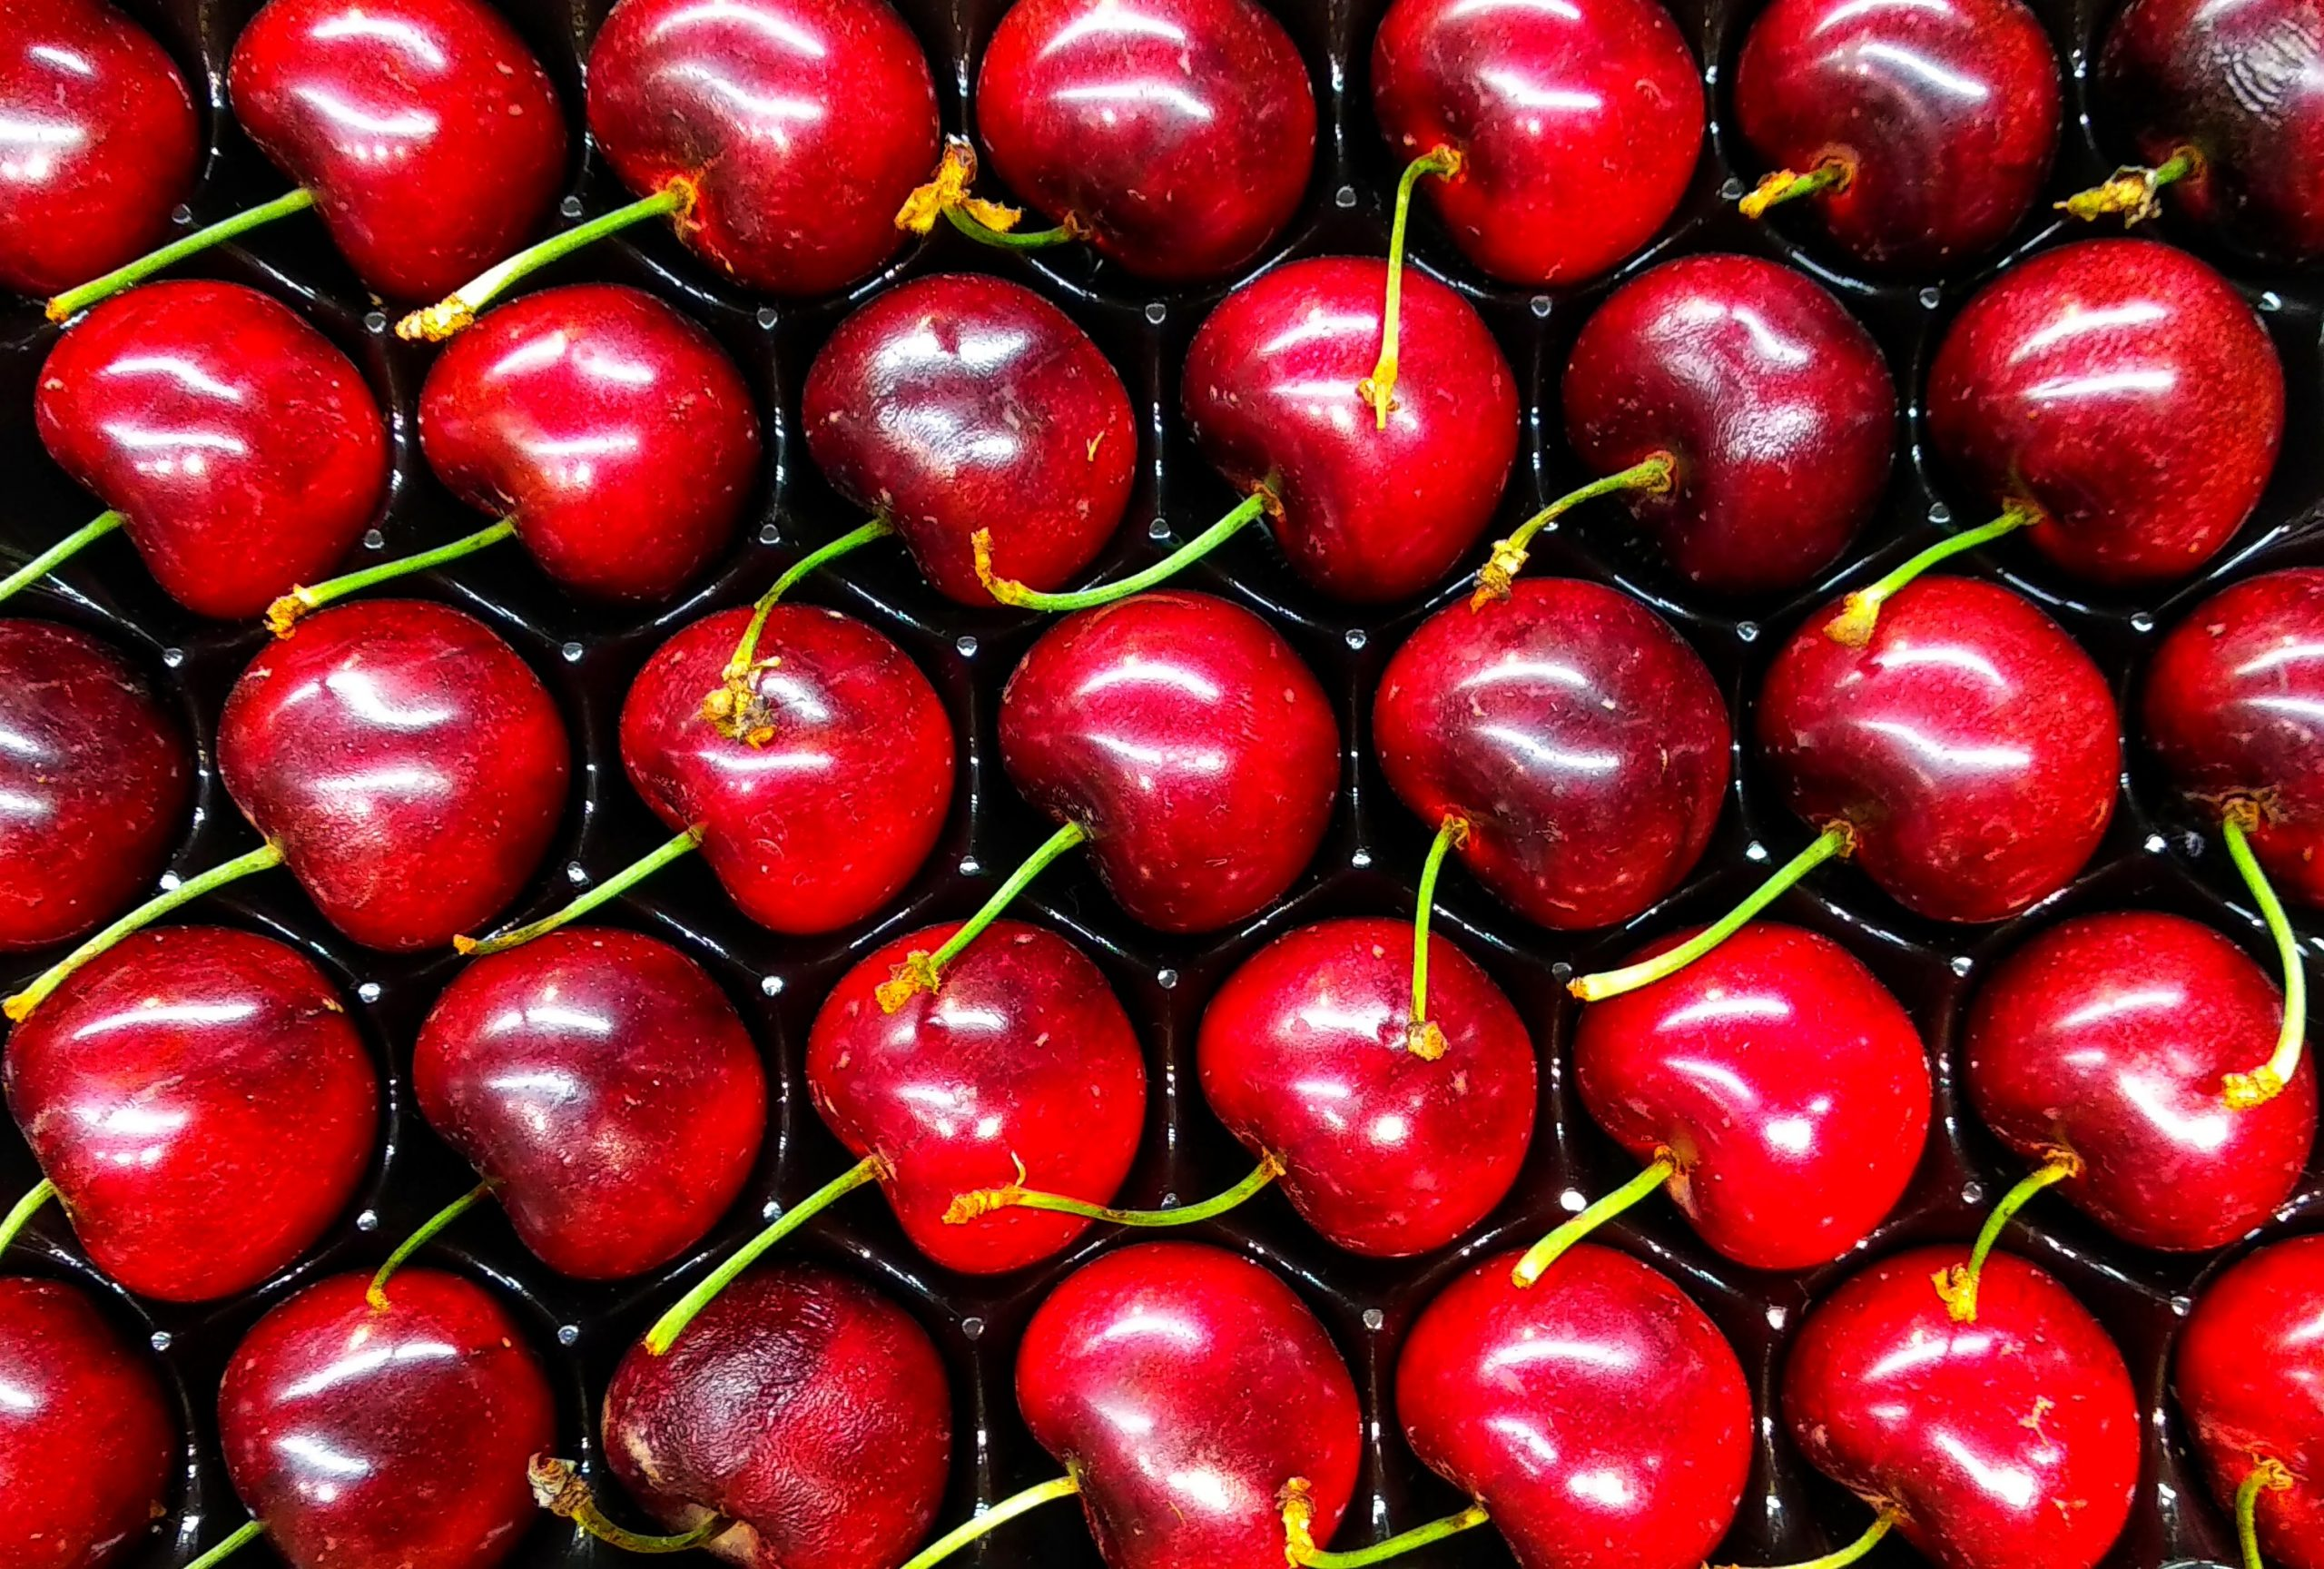 20 Foods Harmful to Dogs - cherries